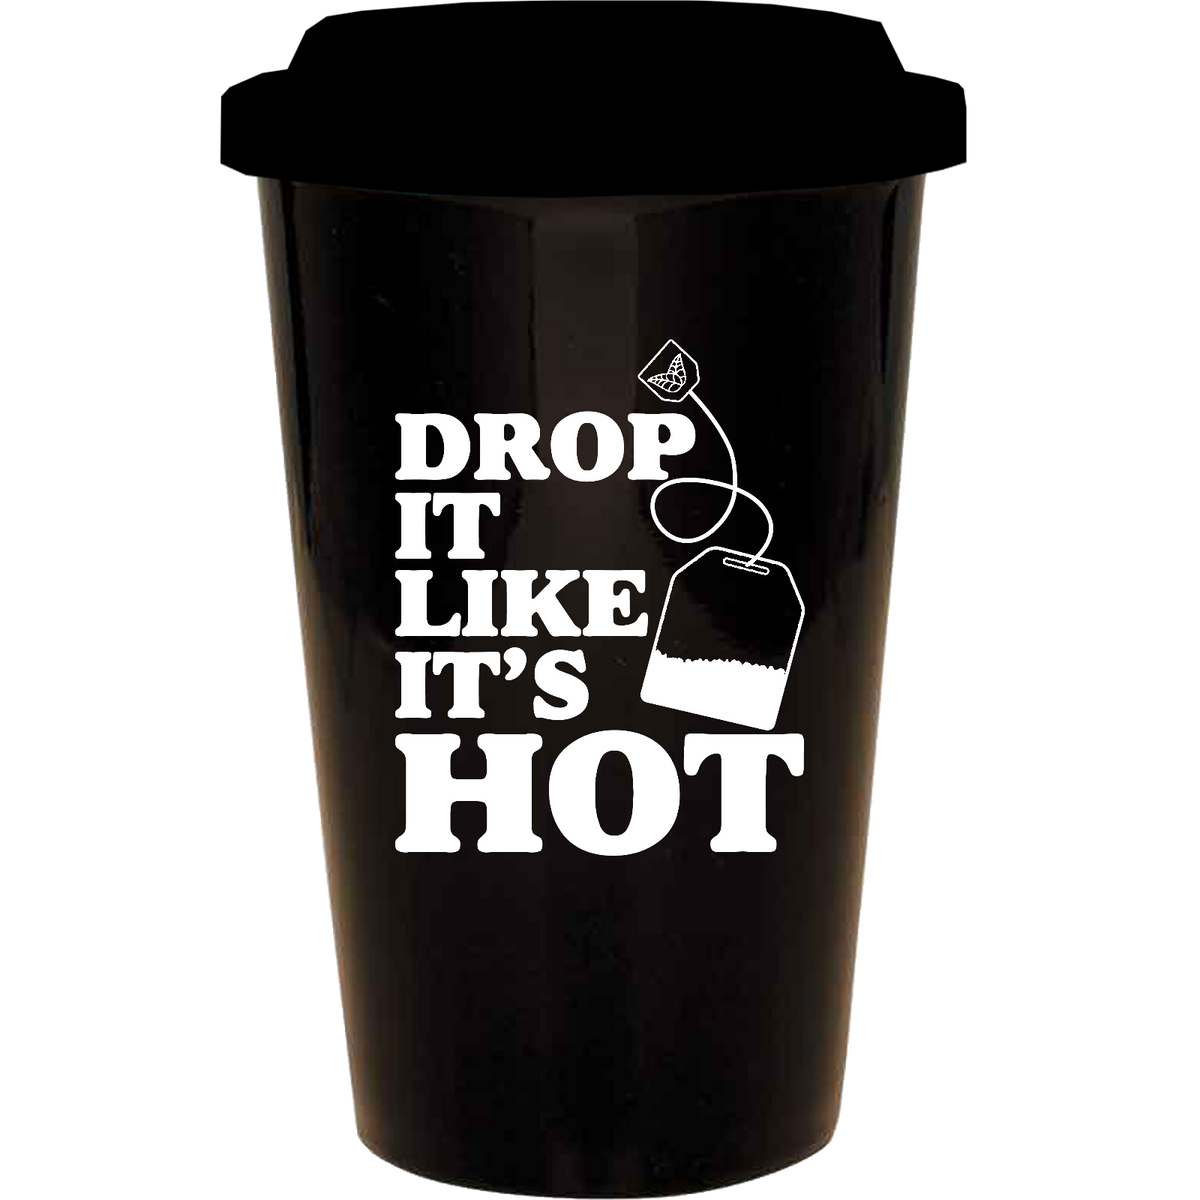 Drop it like it's hot (tea bag) - 14oz. Engraved Tall Ceramic Mug With Silicone Lid